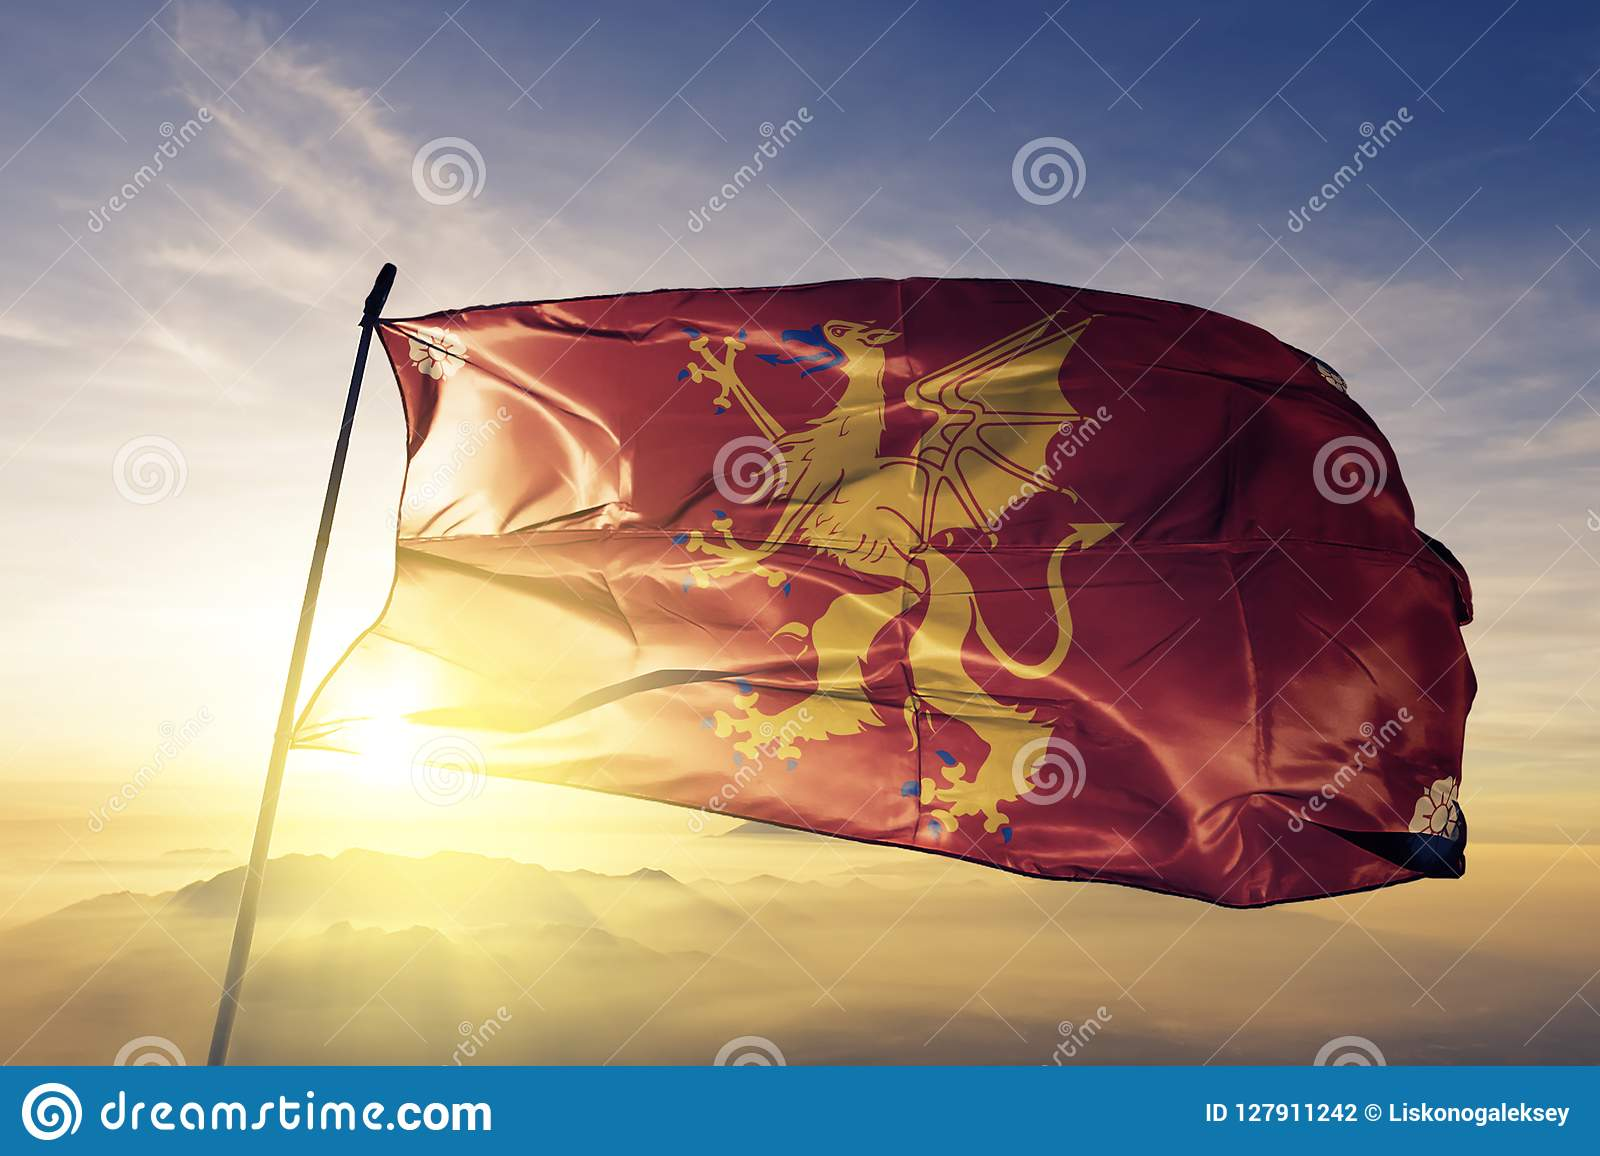 Ostergotland County Of Sweden Flag Textile Cloth Fabric Waving On The Top Sunrise Mist Fog Stock Illustration Illustration Of Government Banner 127911242